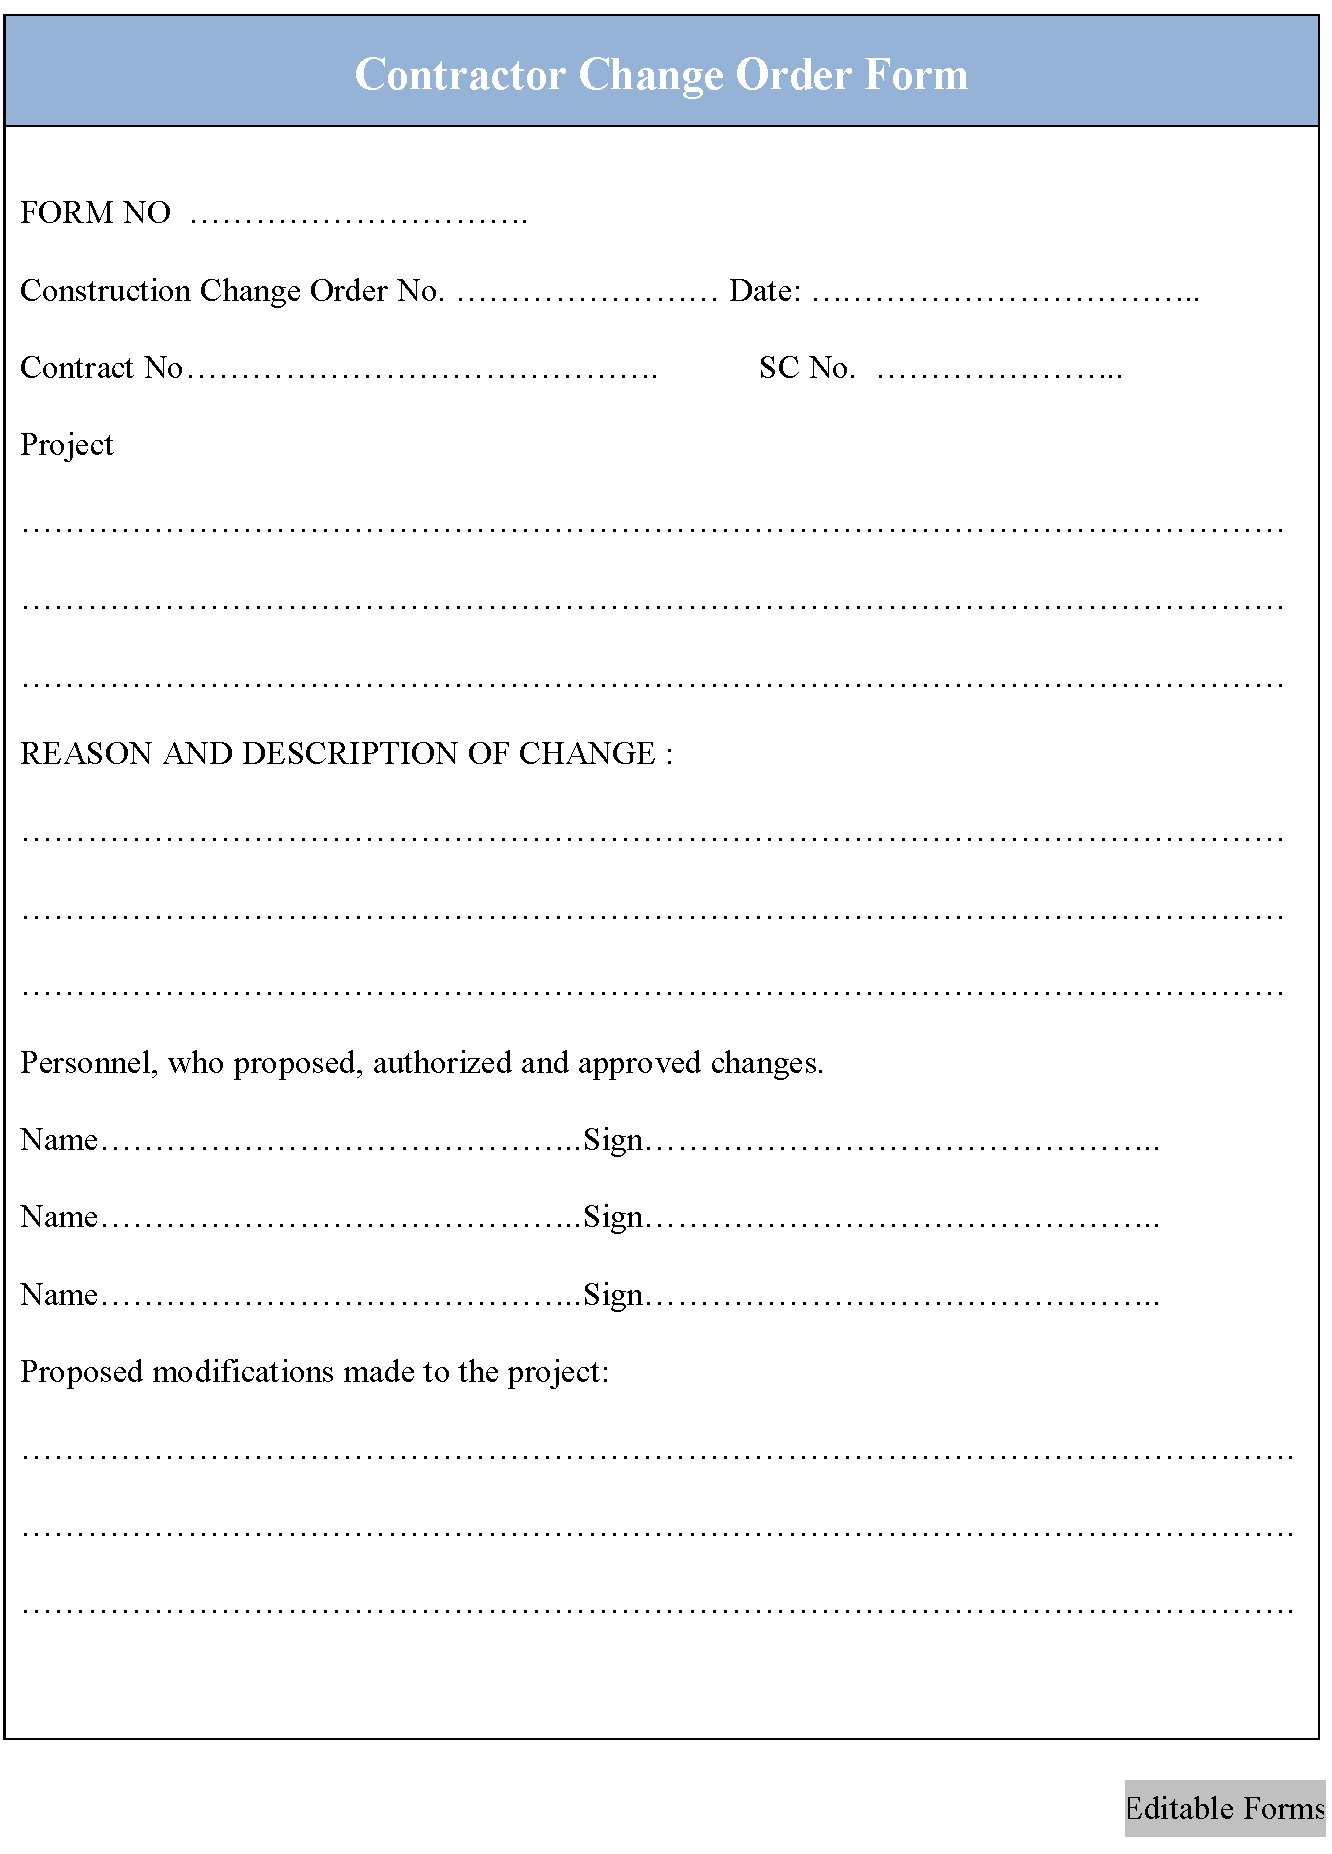 contractor change order form editable forms. Black Bedroom Furniture Sets. Home Design Ideas